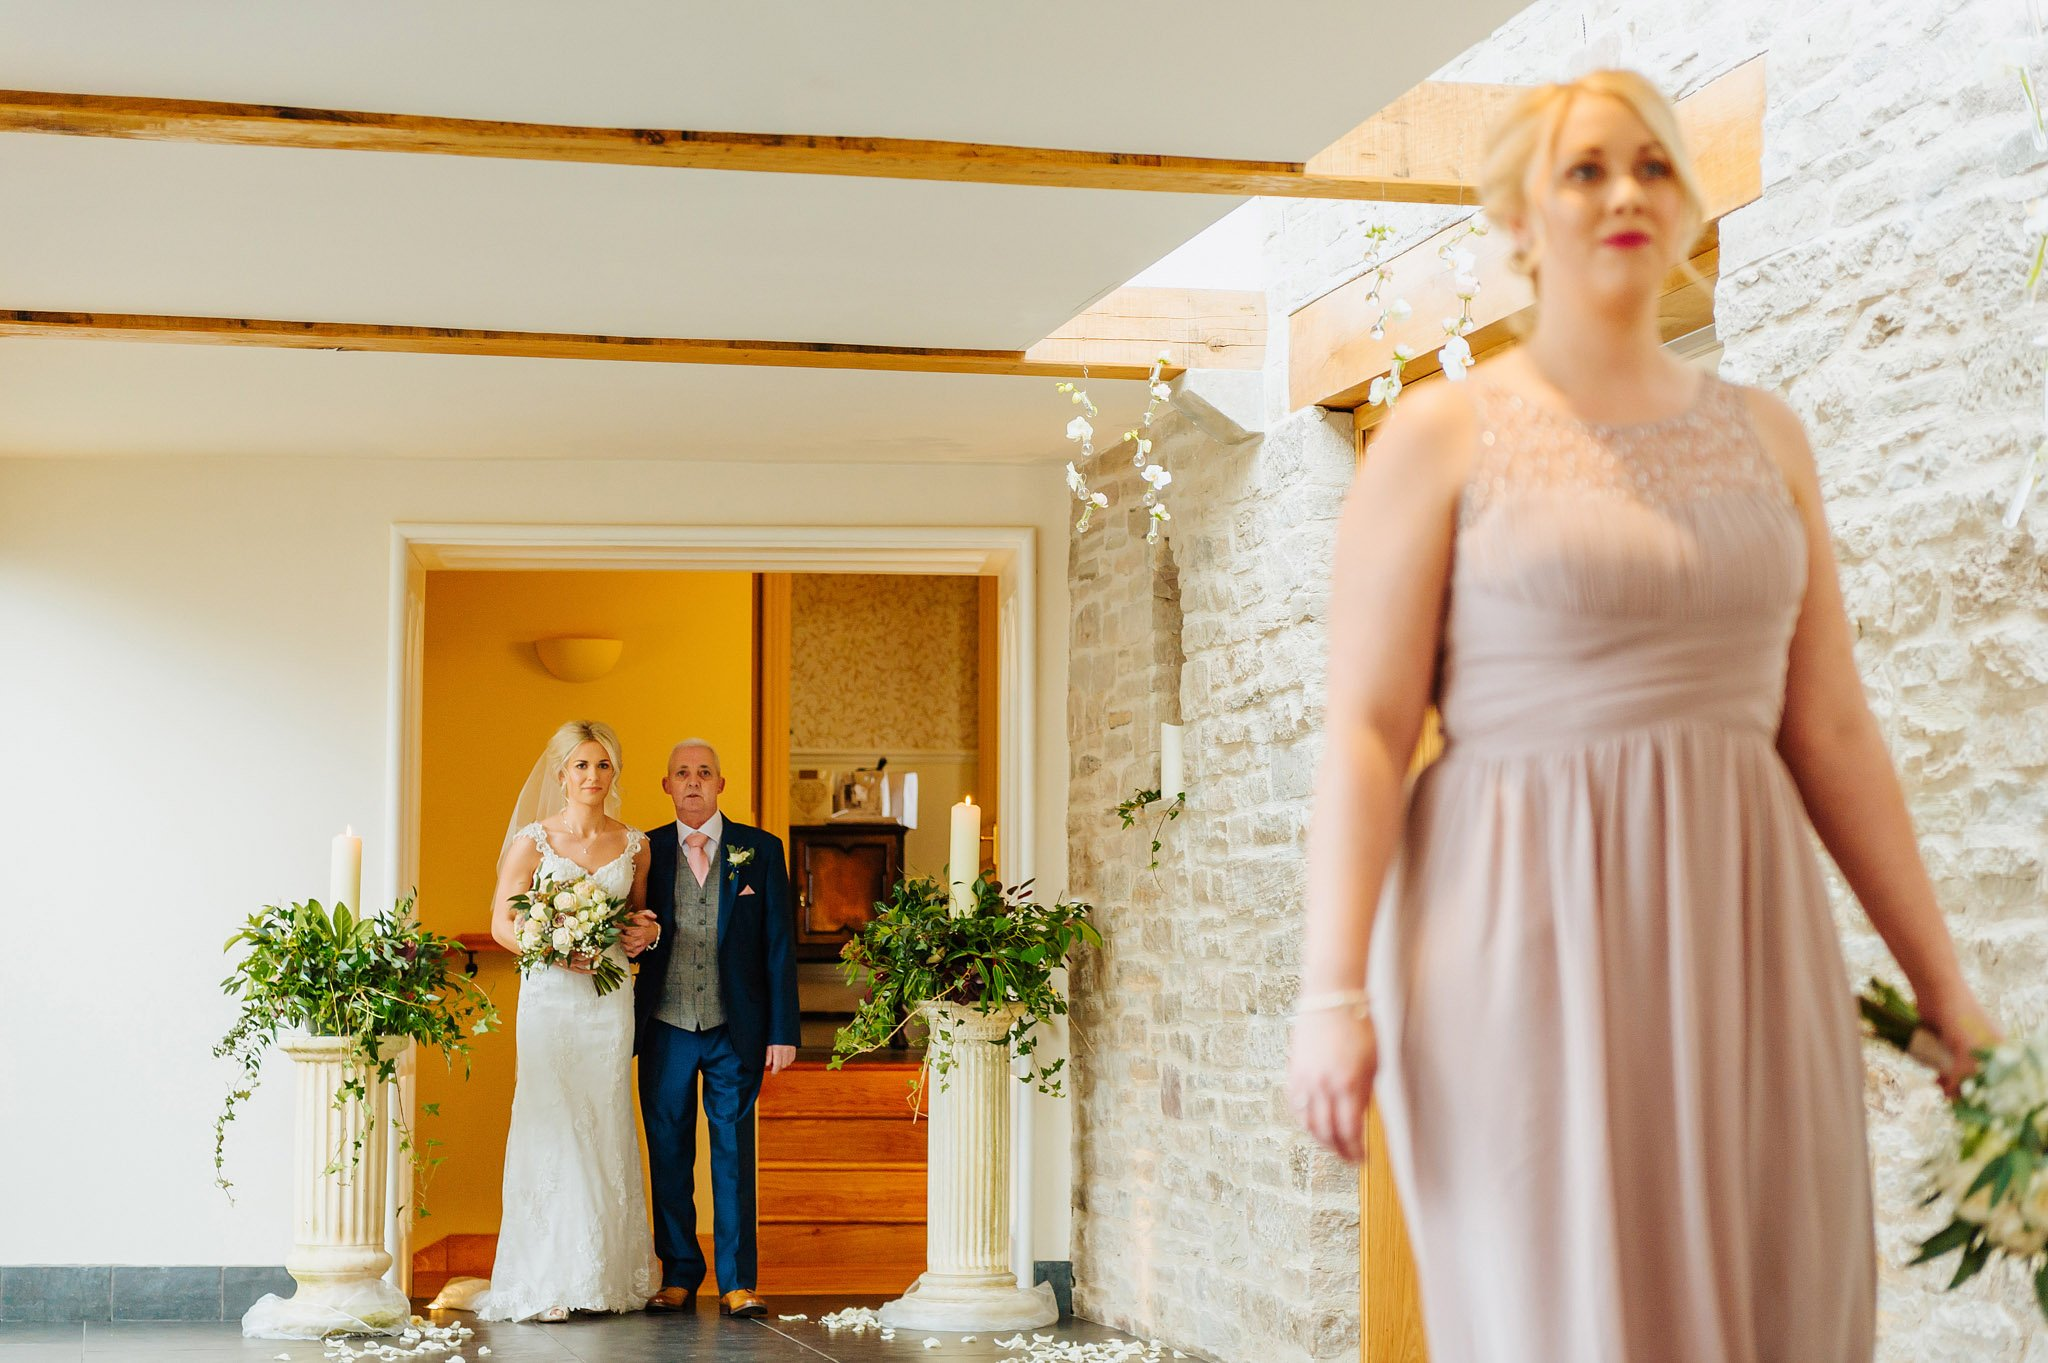 lemore manor wedding herefordshire 39 - Lemore Manor wedding, Herefordshire - West Midlands | Sadie + Ken